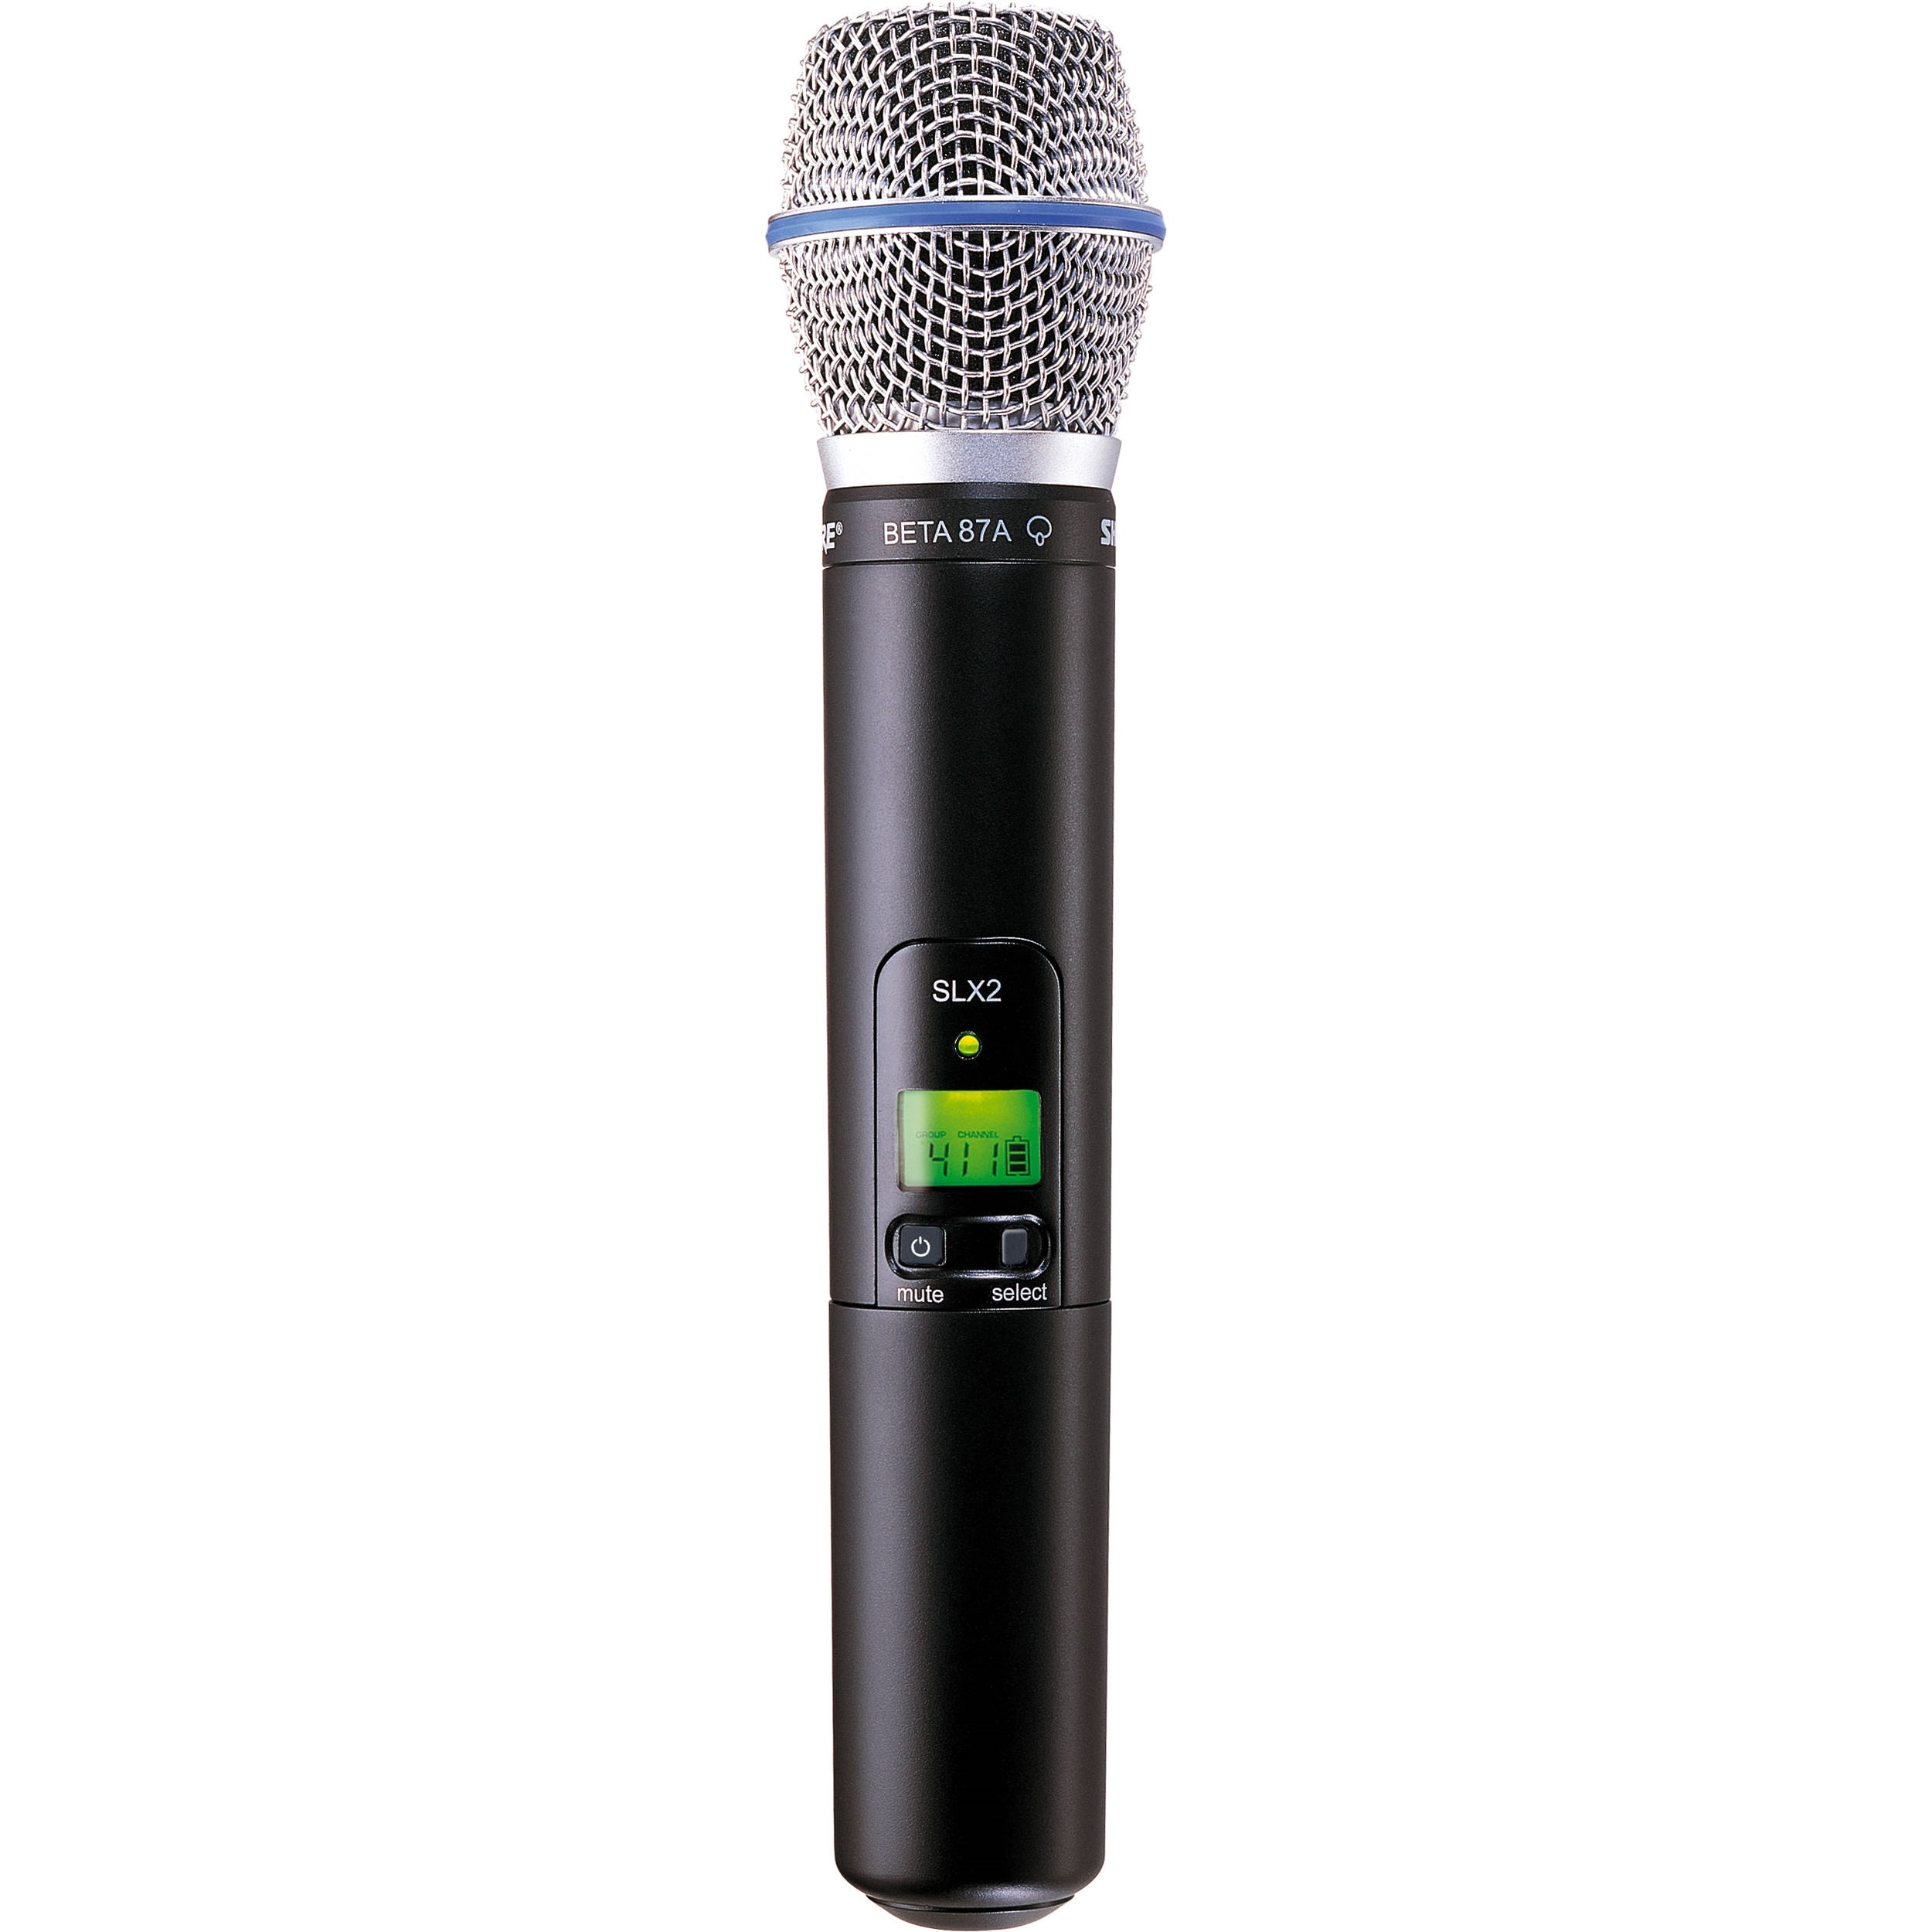 Shure SLXD2/BETA87A Handheld Wireless Microphone Transmitter System With Beta 87A Capsule